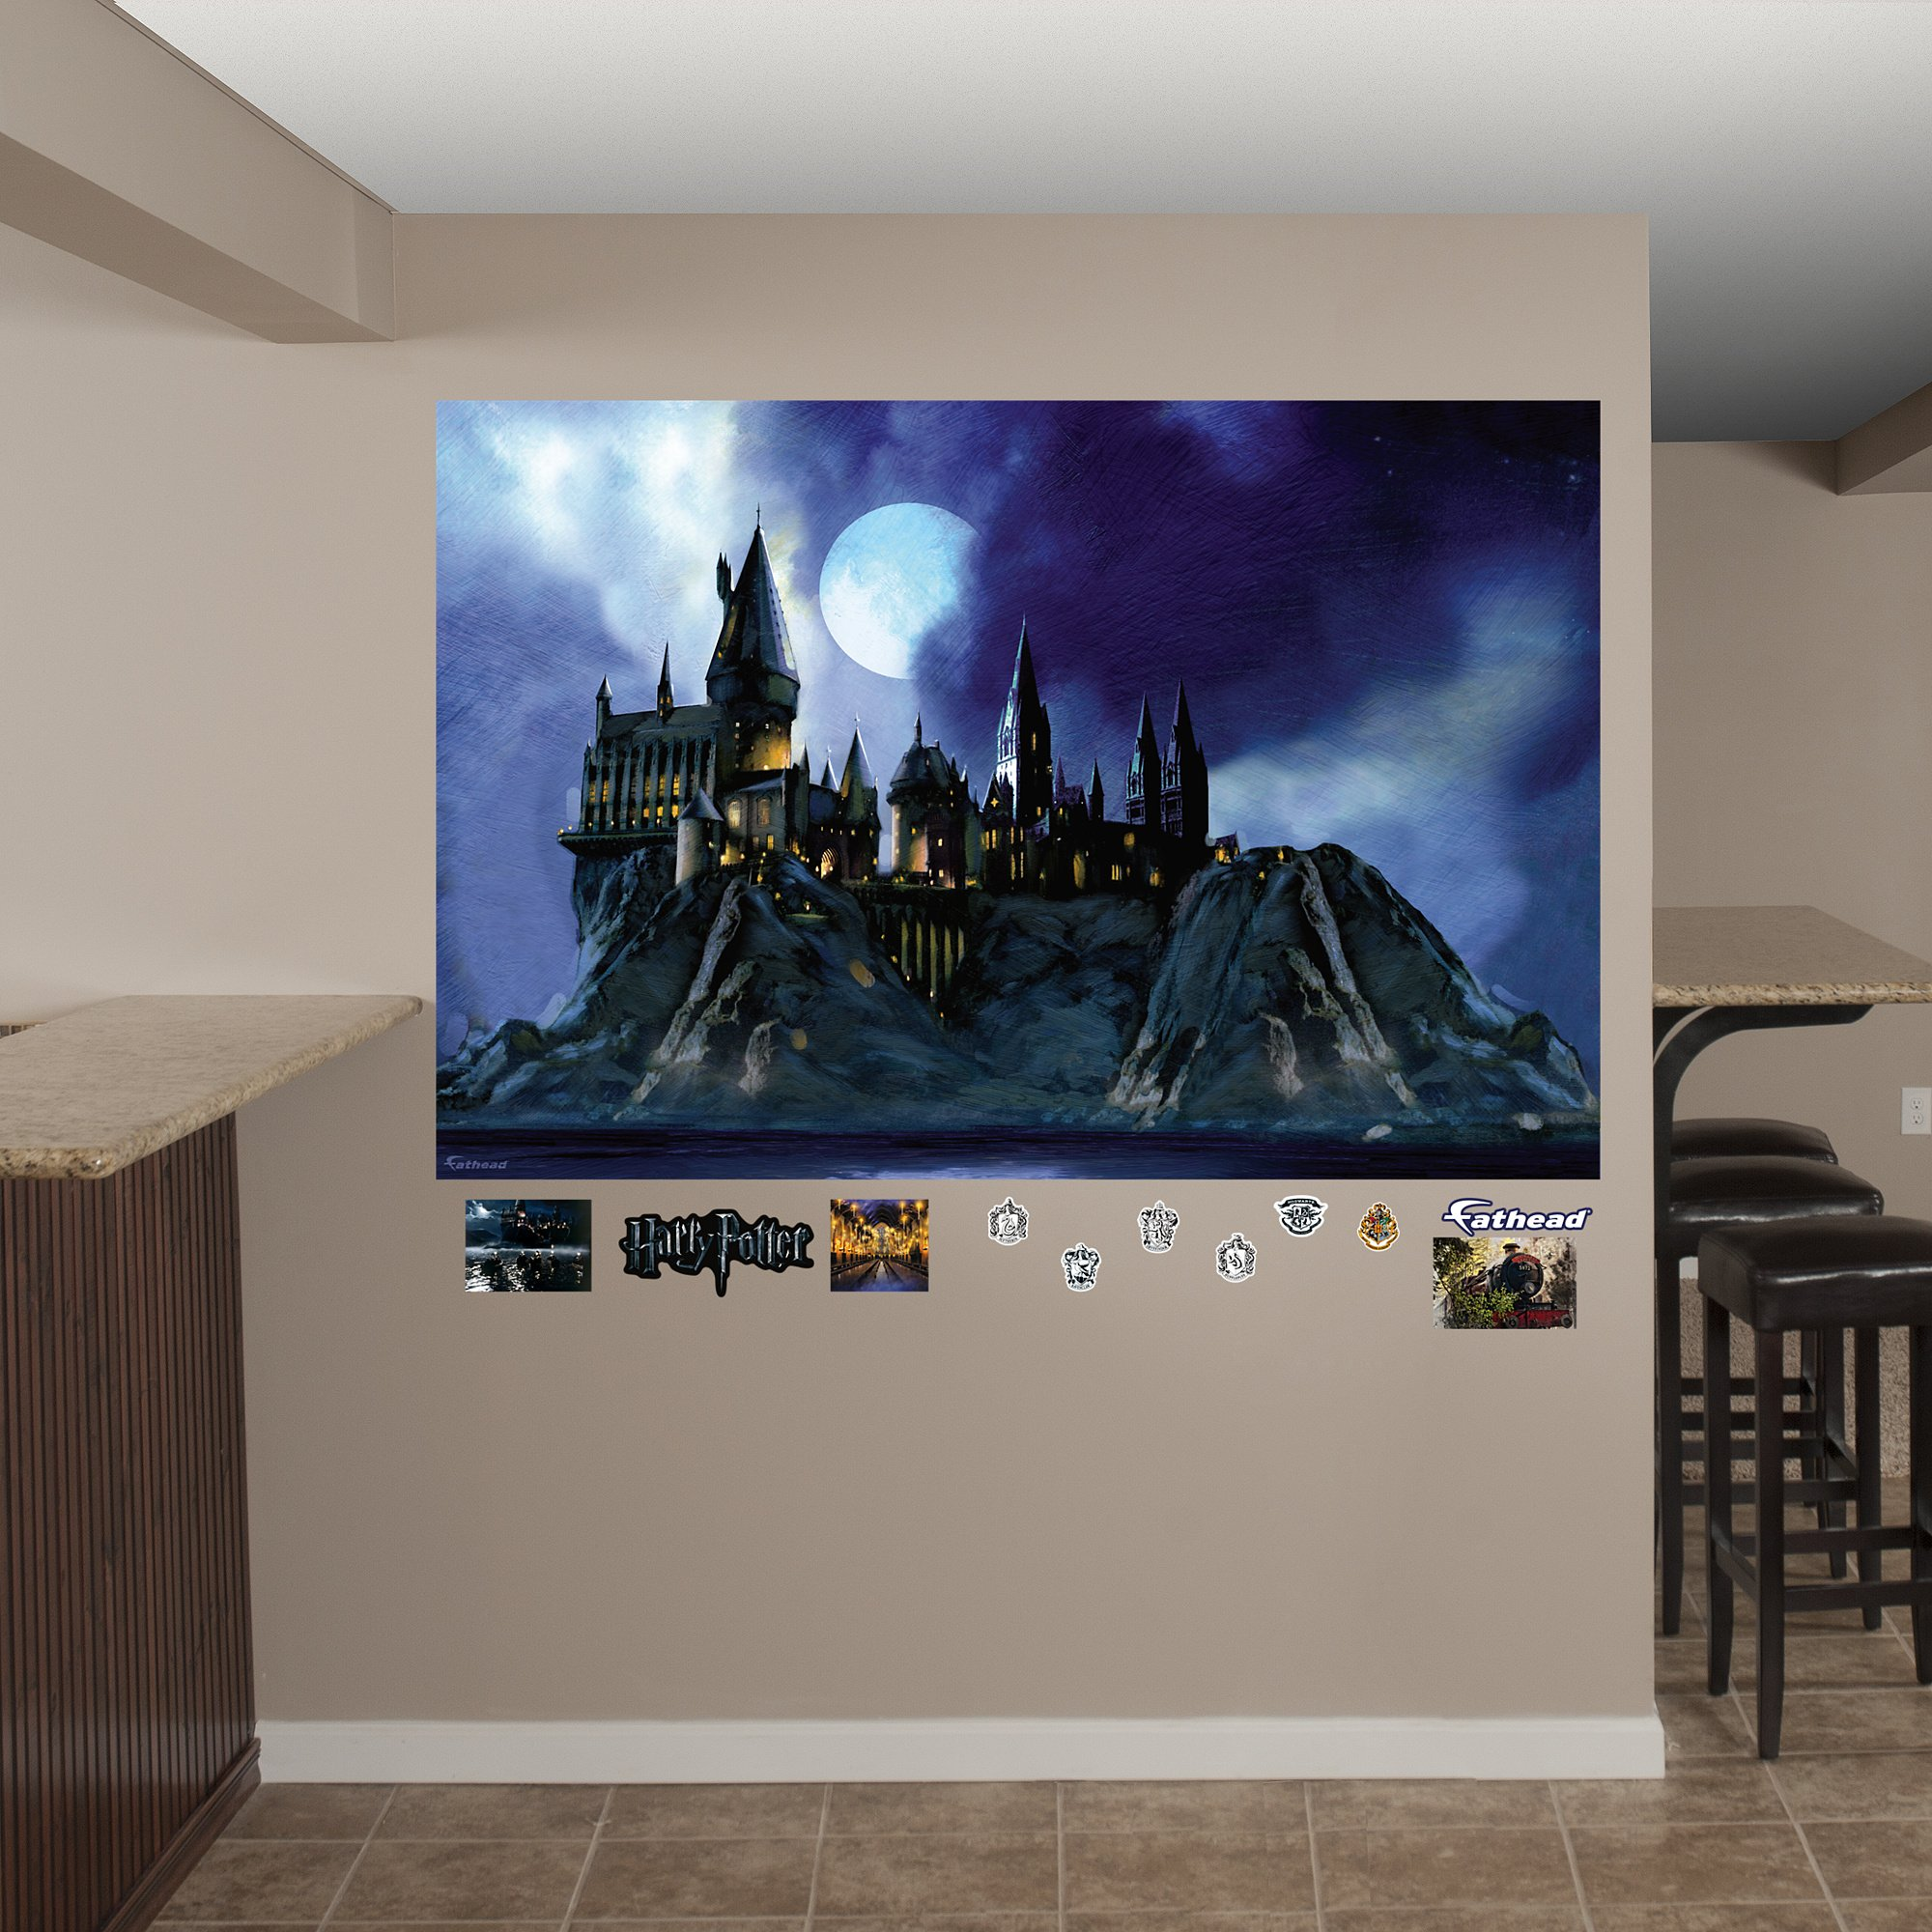 Fathead Hogwarts Castle Real Decals Mural by FATHEAD